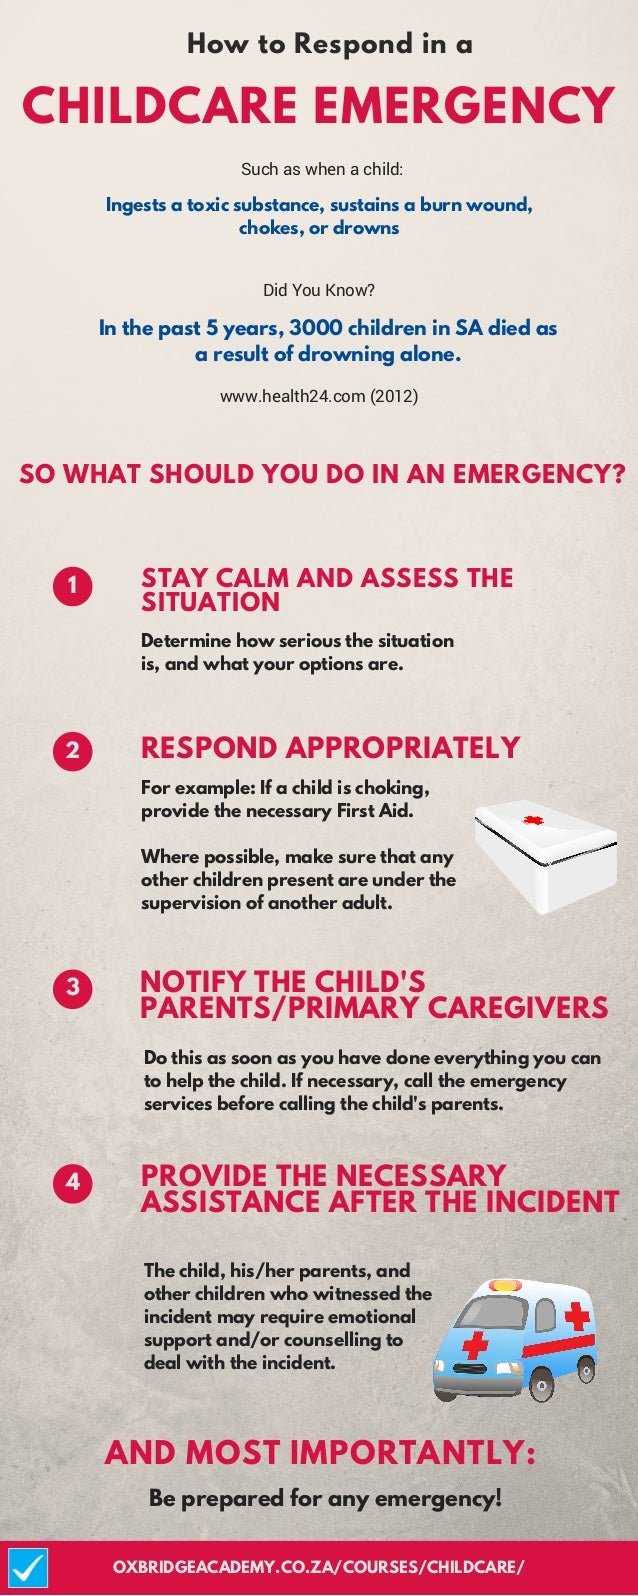 In the past 5 years, 3000 children in SA died as a result of drowning alone. How to Respond in a CHILDCARE EMERGENCY 1 RES...